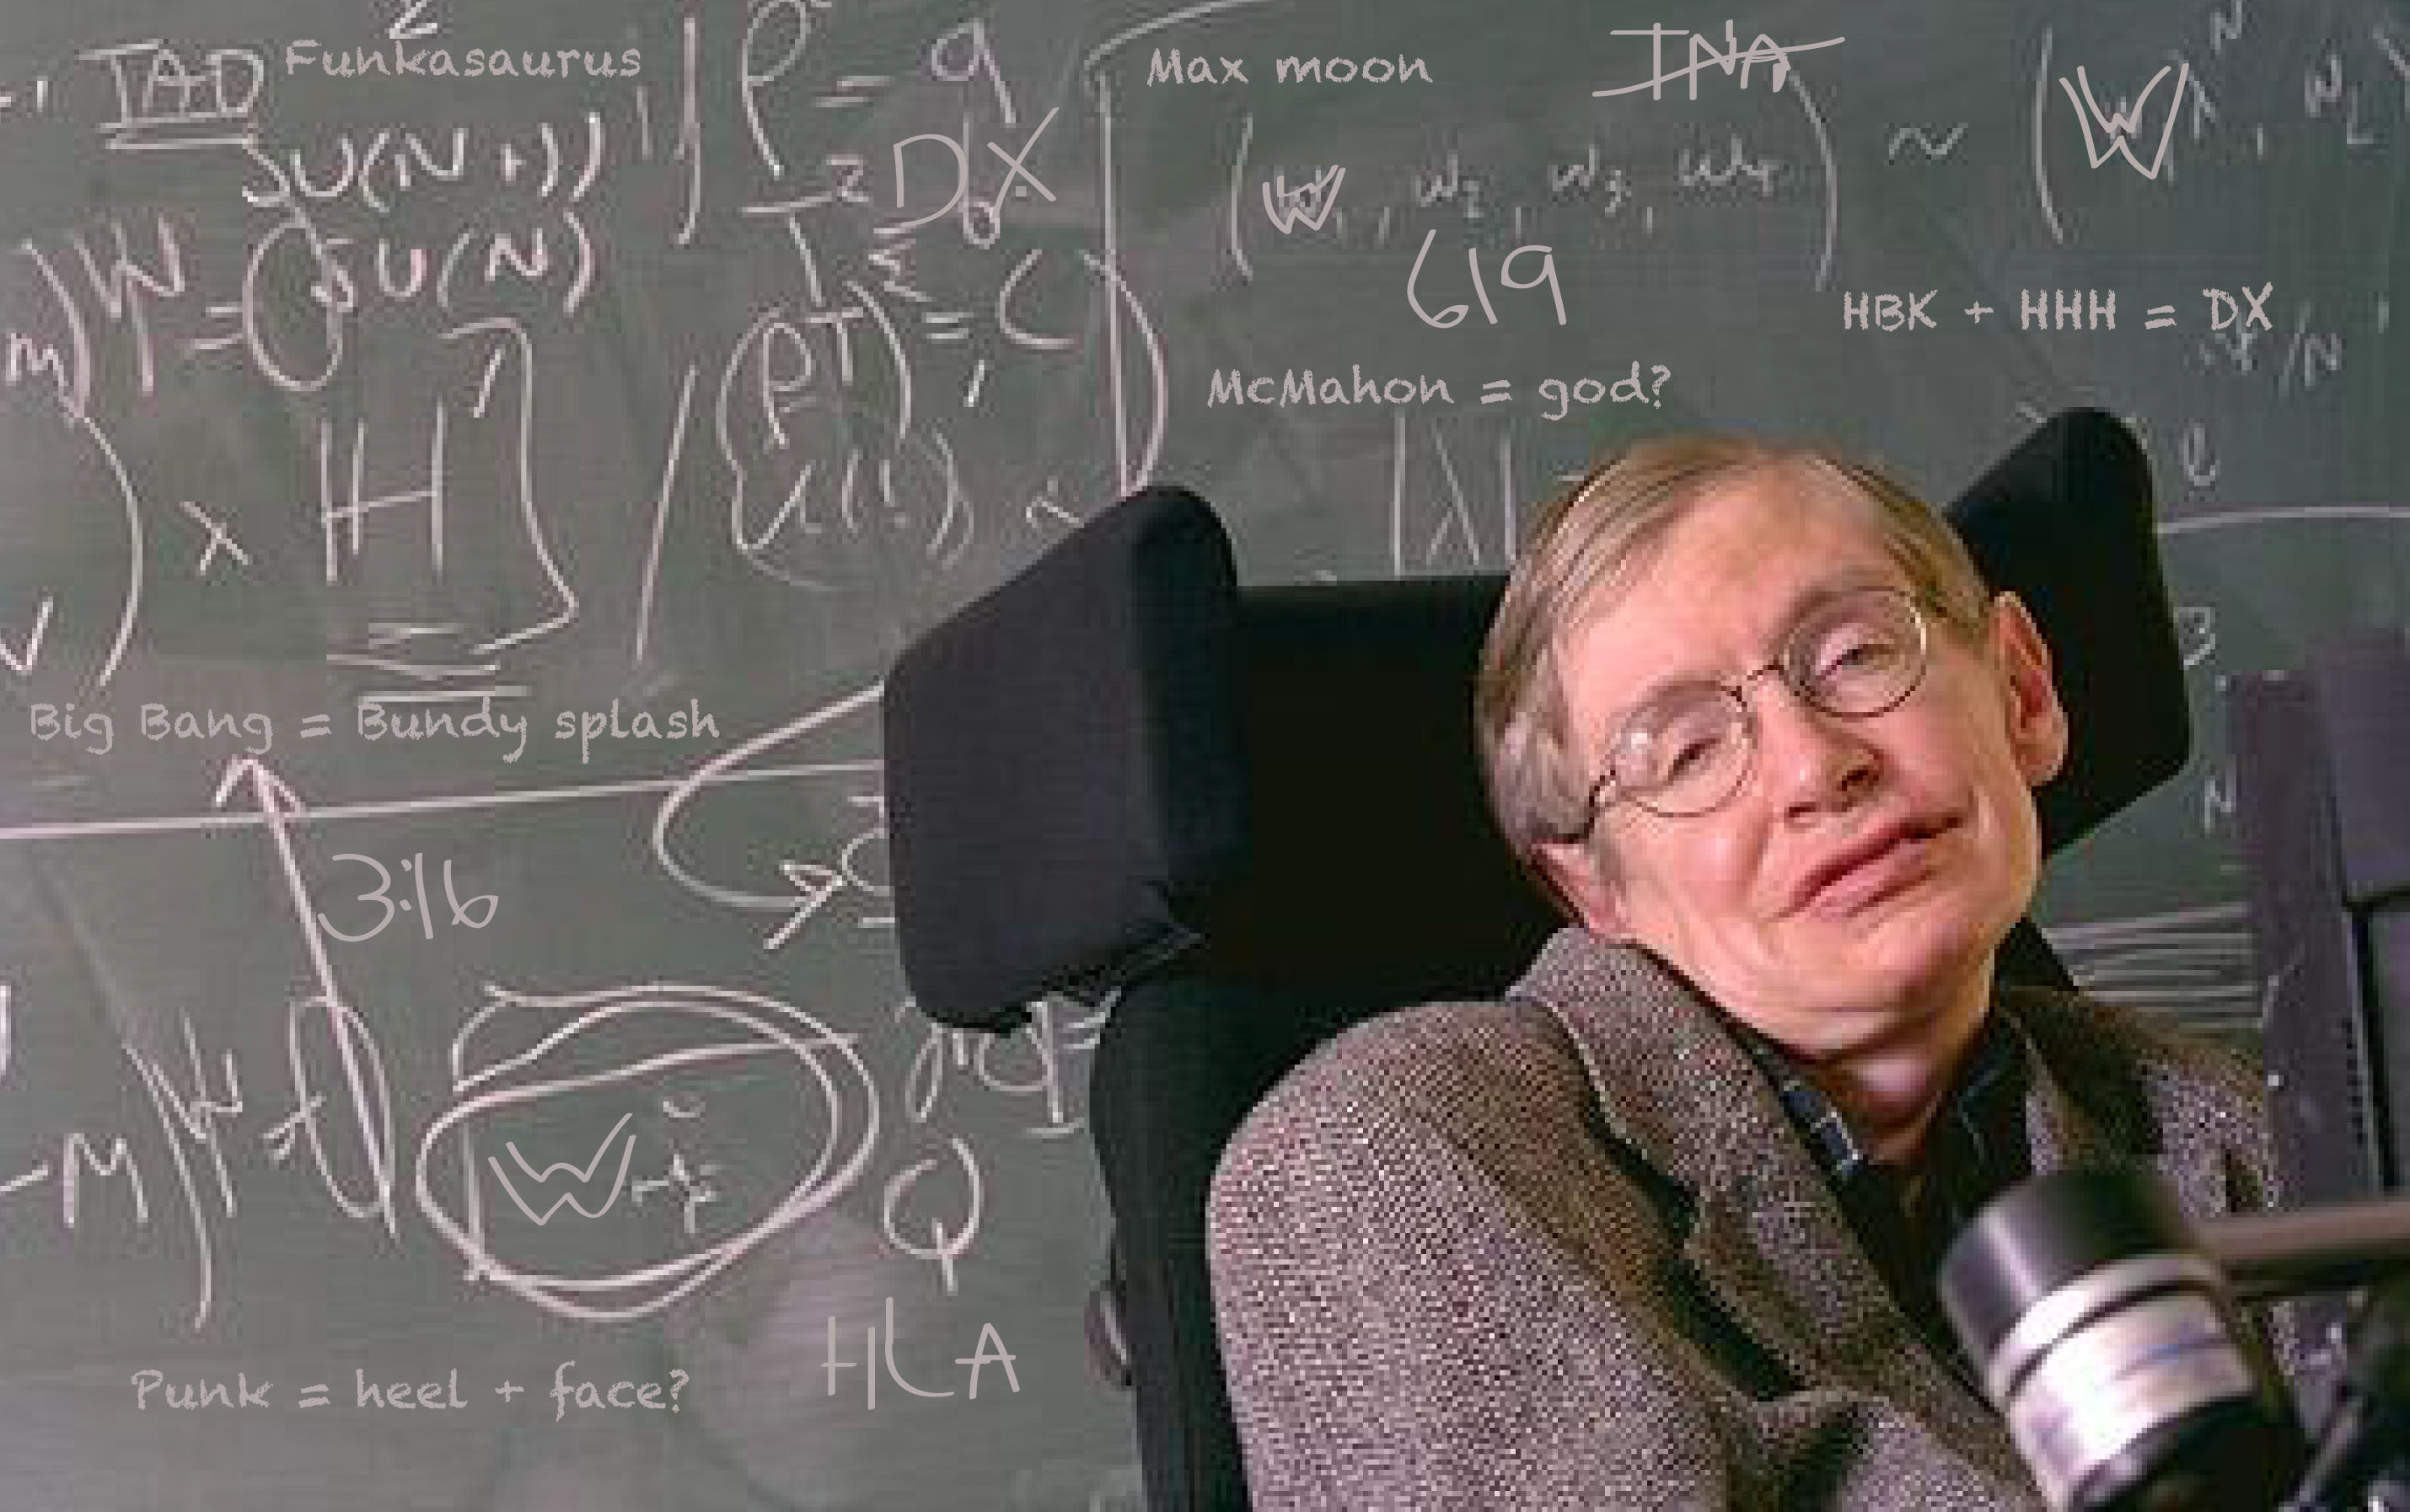 FOTO: hawking.org.uk